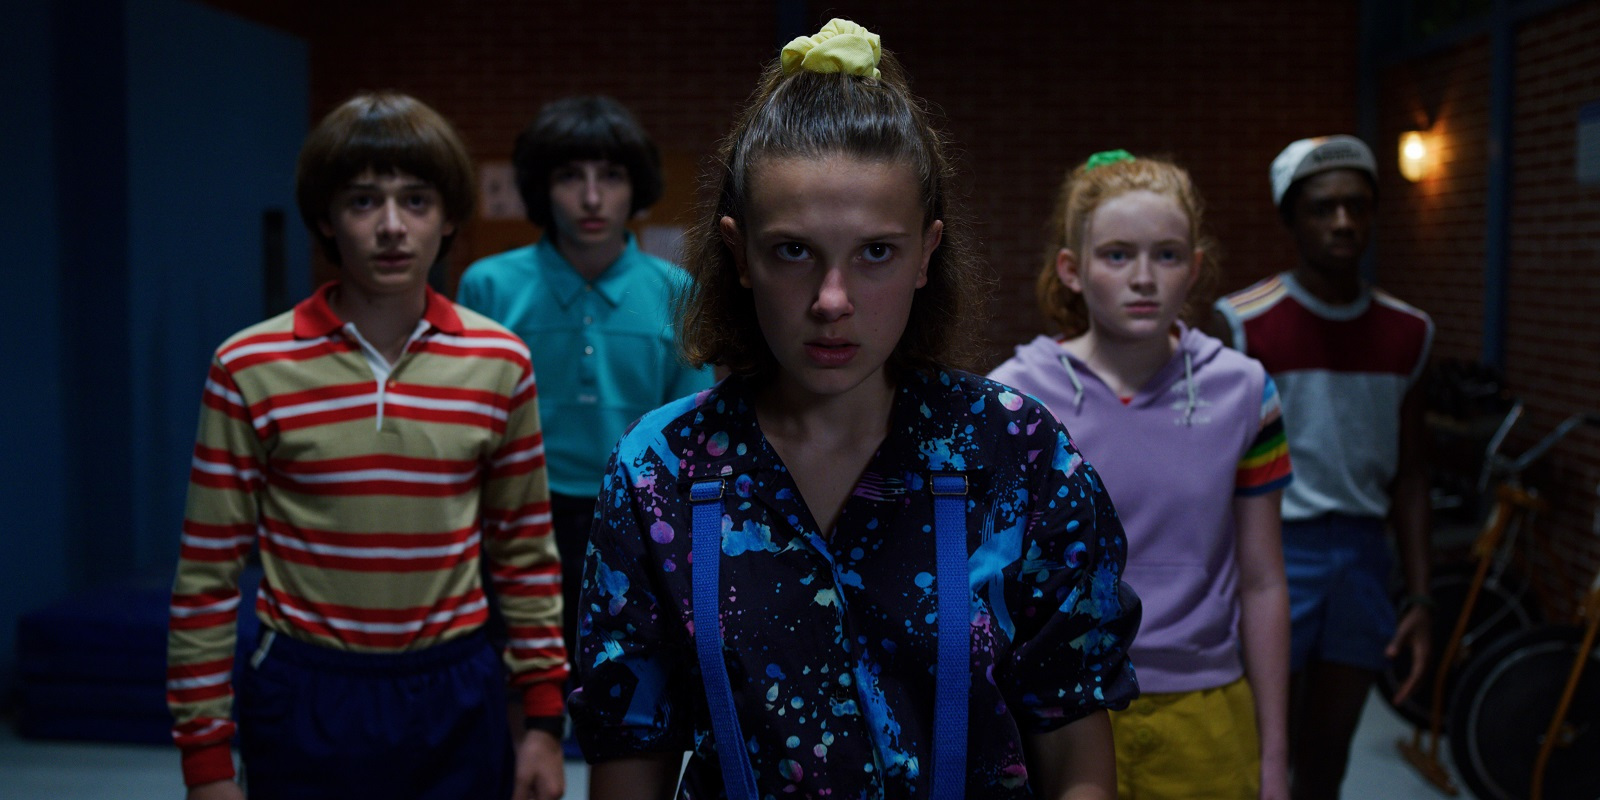 stranger-things-3-1.jpg